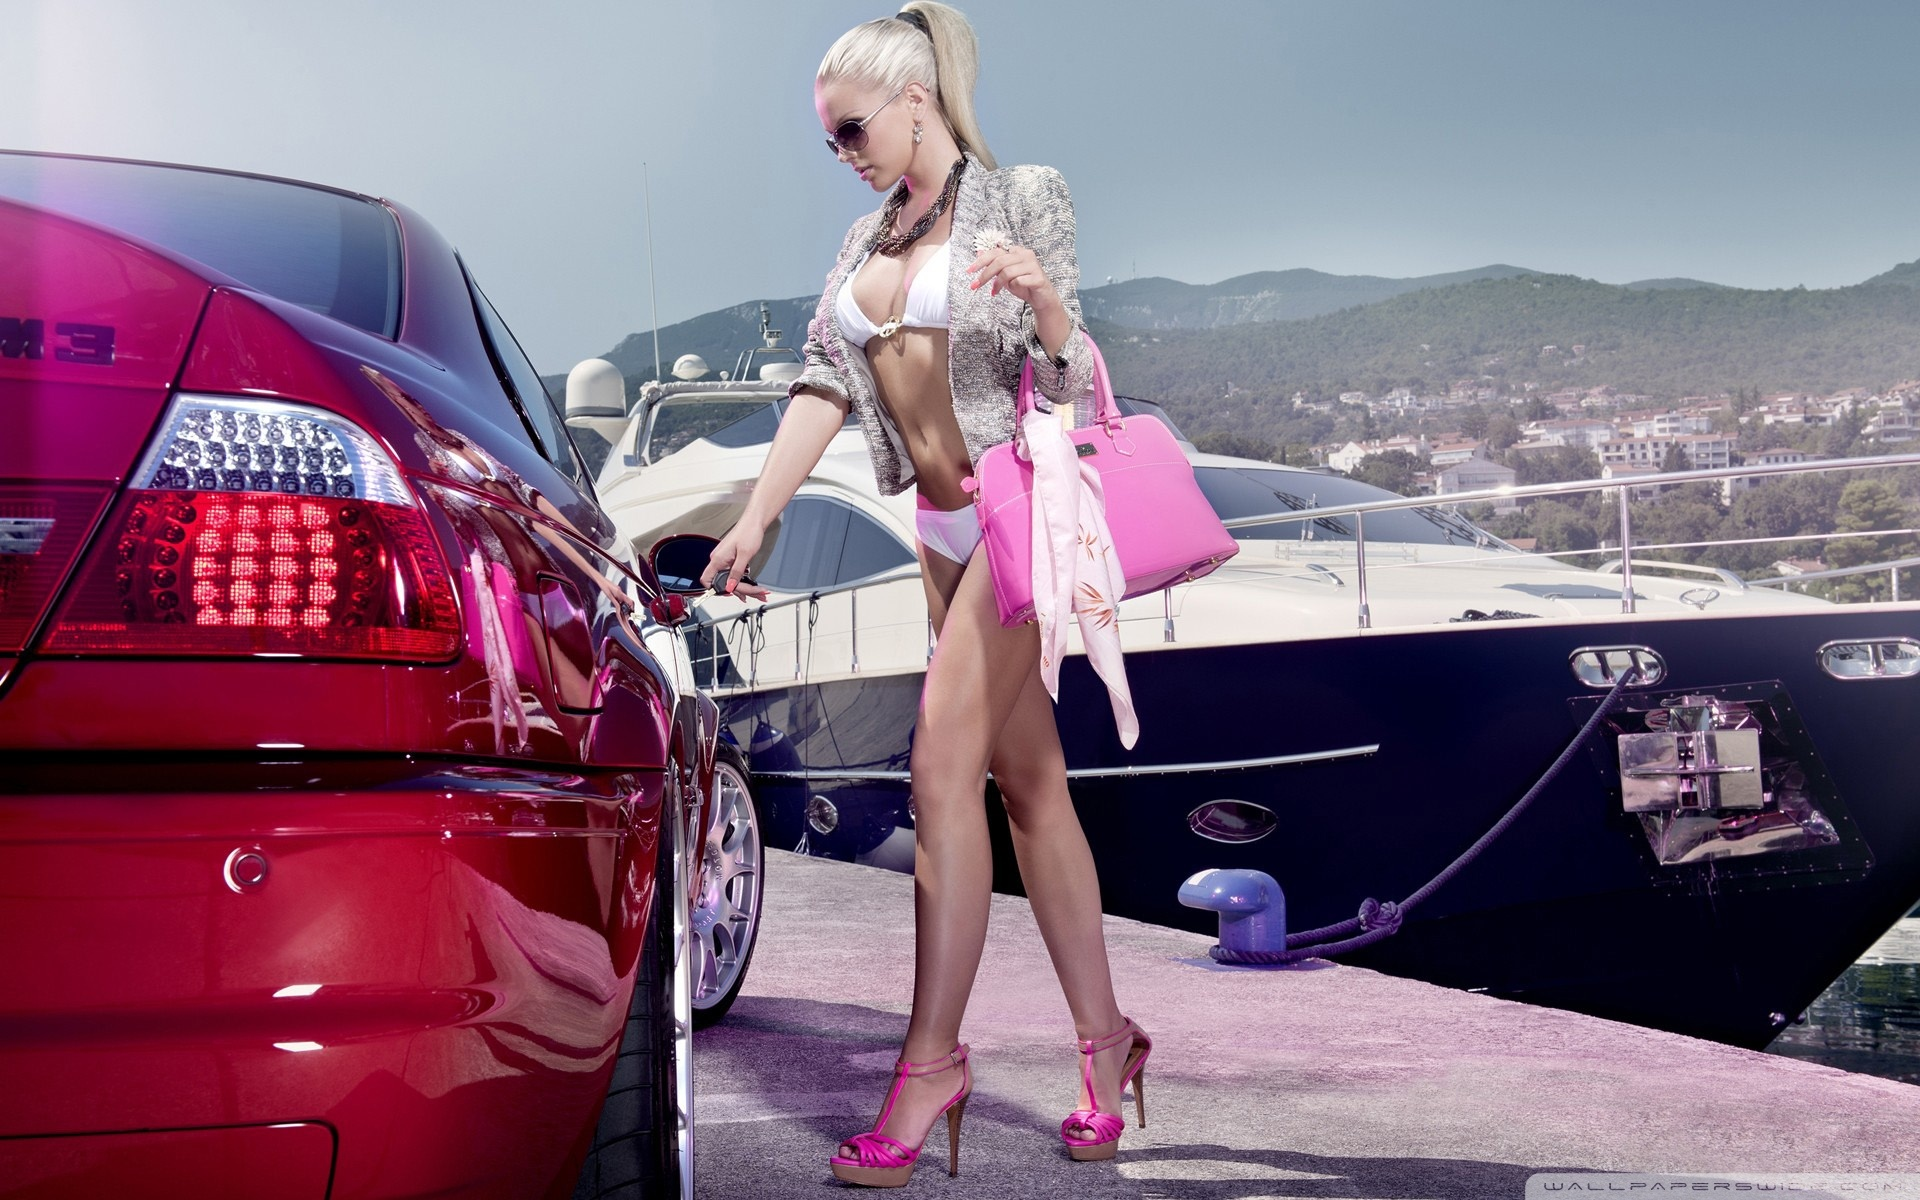 Next to a new car young Euro babe Natalia Starr displays her fine body № 561088 без смс